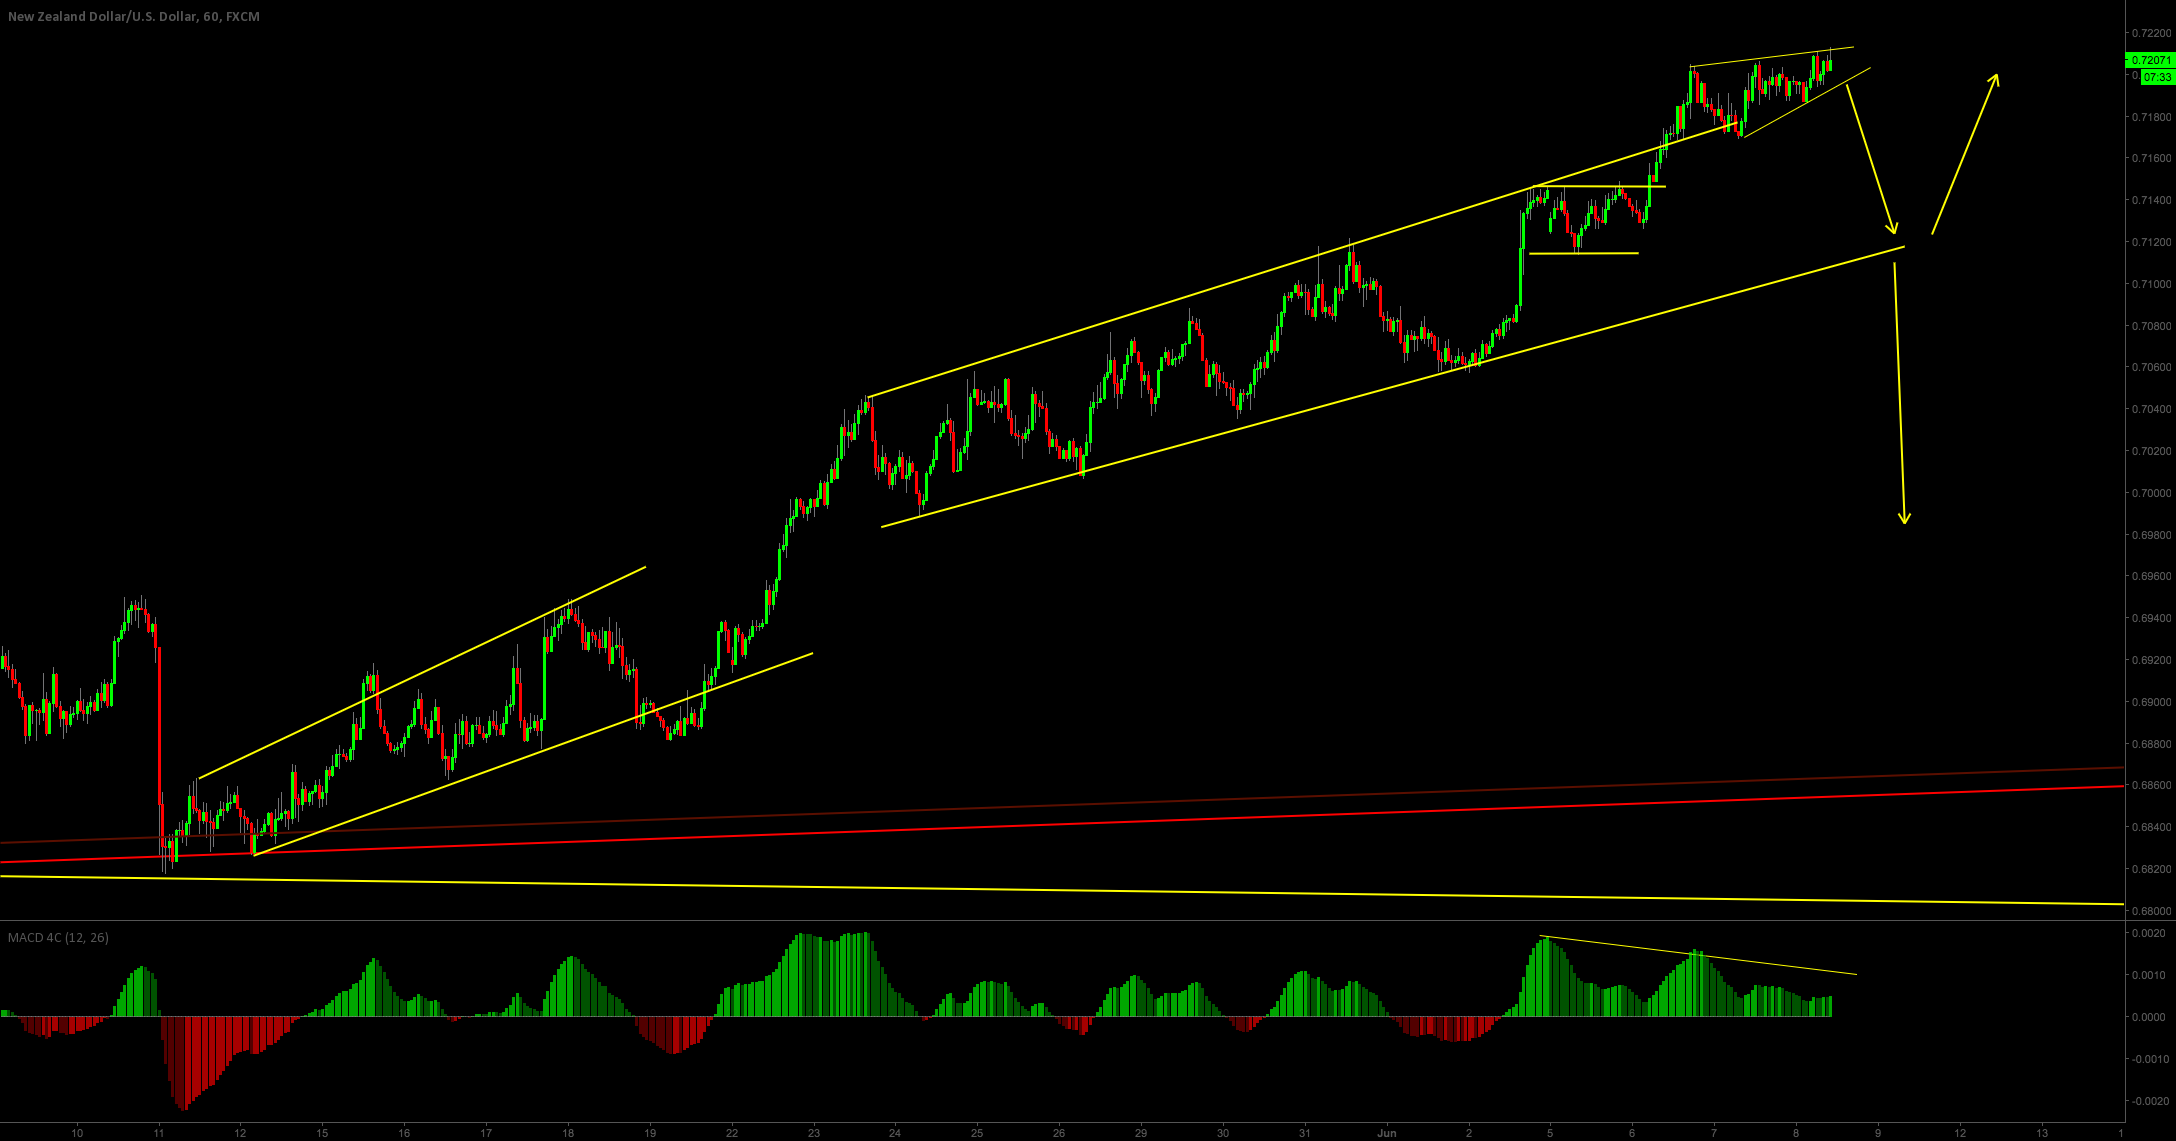 The trend is showing signs of exhaustion?